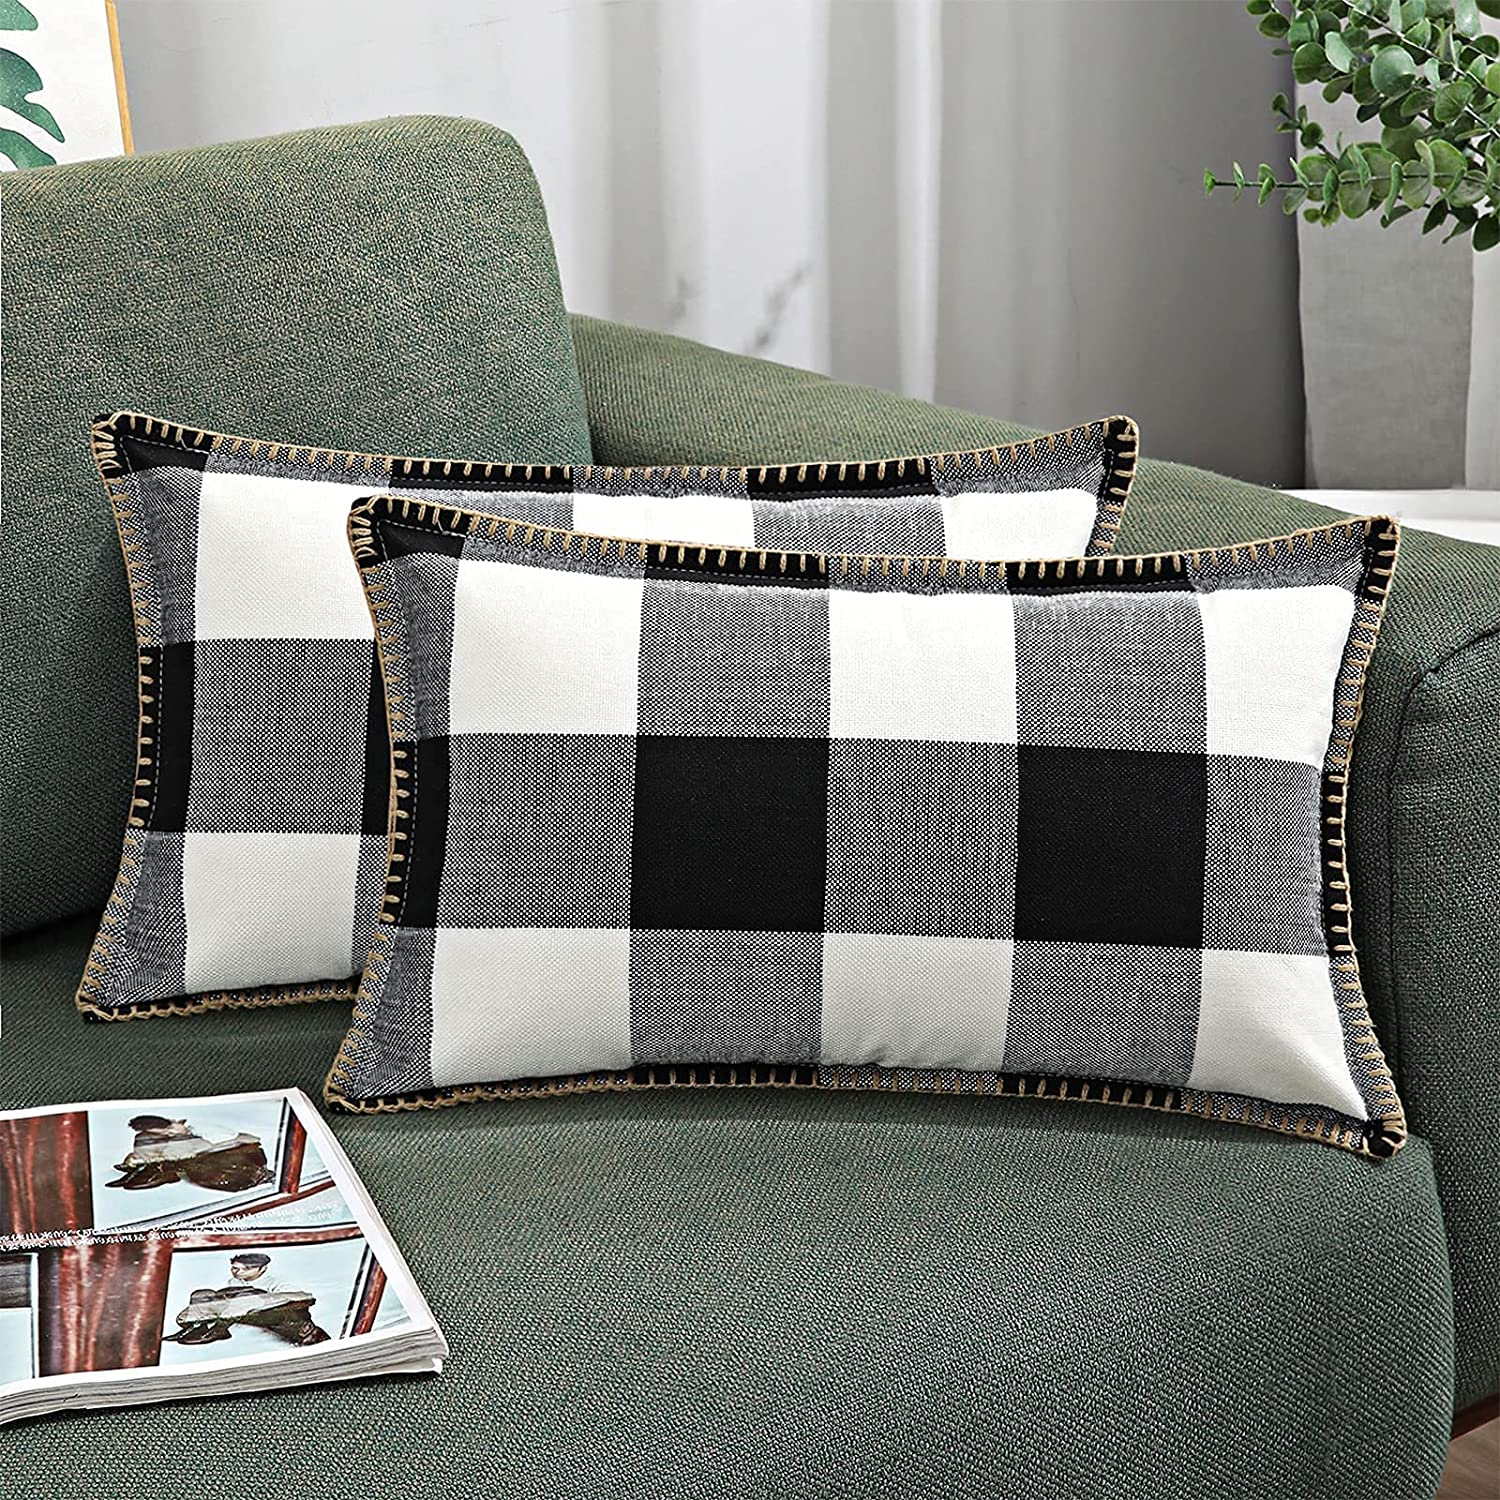 decorUhome Set of Regular store 2 Buffalo Plaid Outlet sale feature Covers Check Throw Farm Pillow